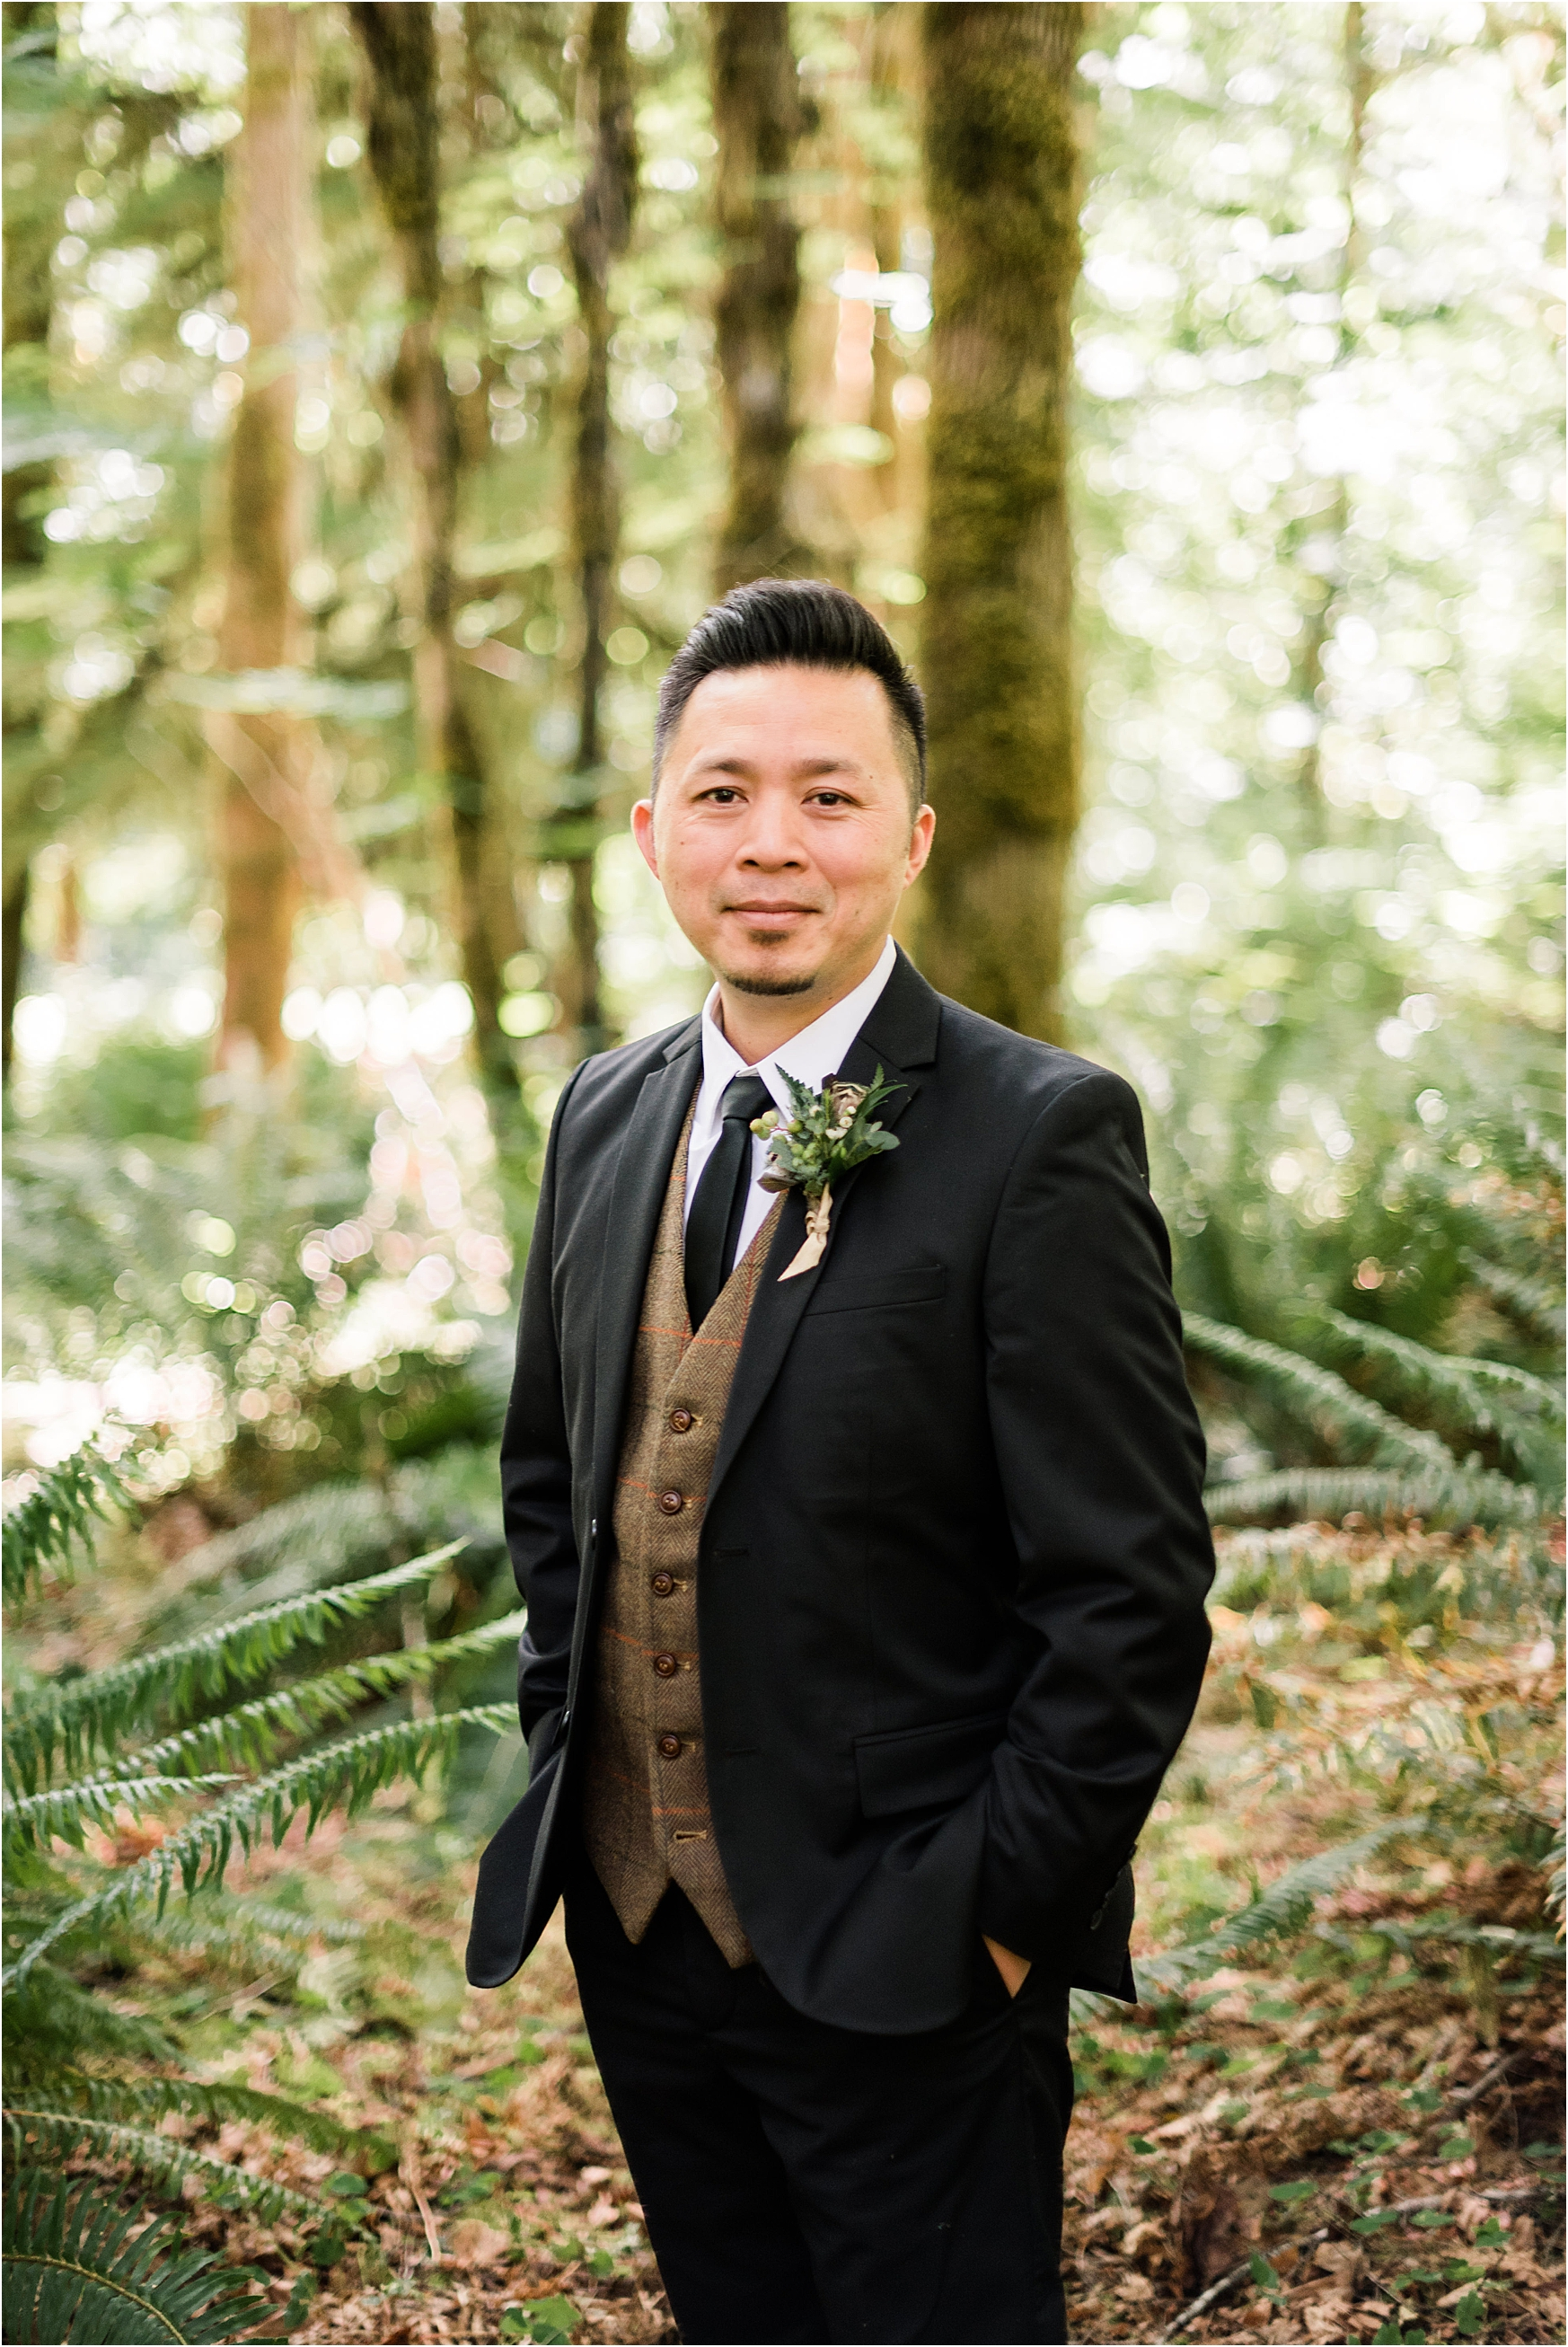 Groom portraits at Cassy & Viva's bohemian Oregon destination wedding at Camp Lane. Image by Forthright Photo.